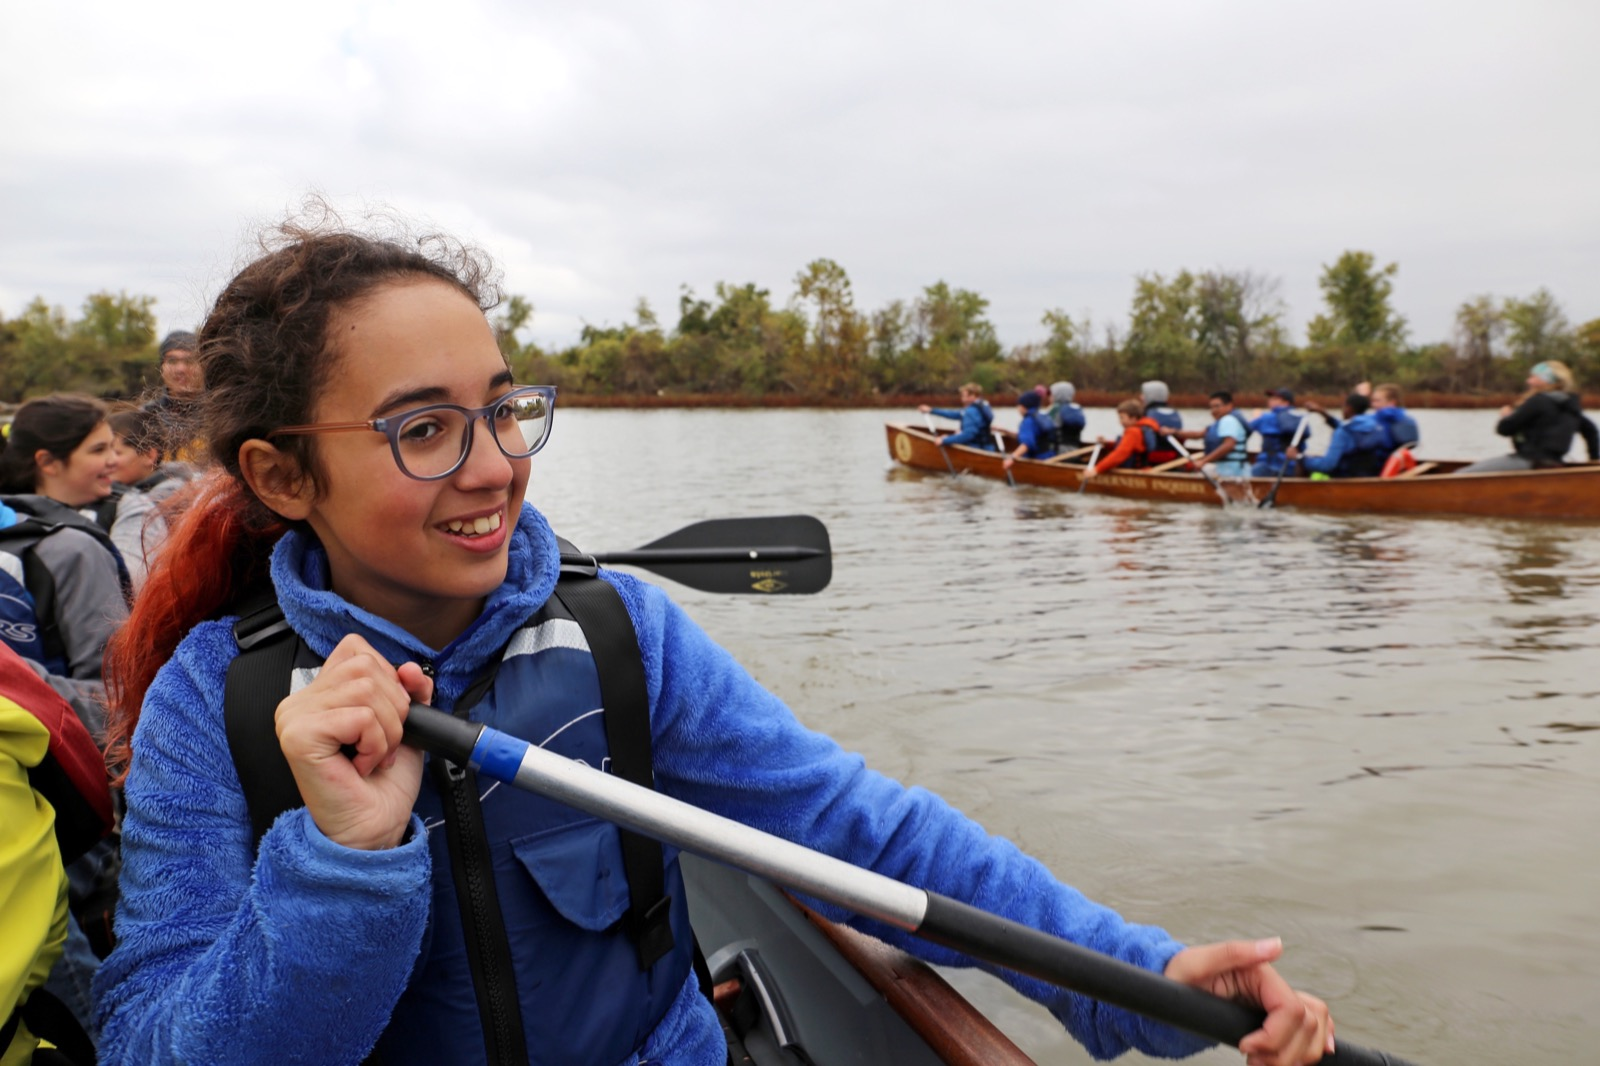 A happy student paddling on the water